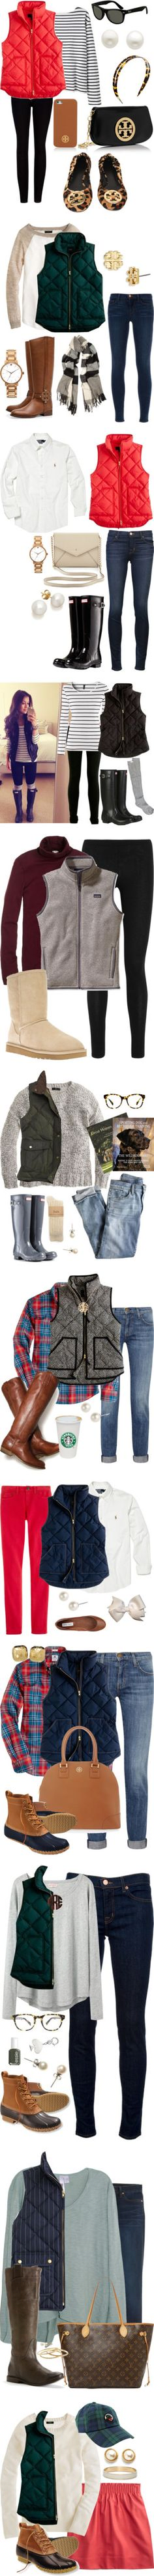 InVESTED Style by jules-ss on Polyvore featuring Wood Wood, Ted Baker, Ray-Ban, J.Crew, Tory Burch, Reeds Jewelers, Burberry, J Brand, Kate Spade and Polo Ralph Lauren